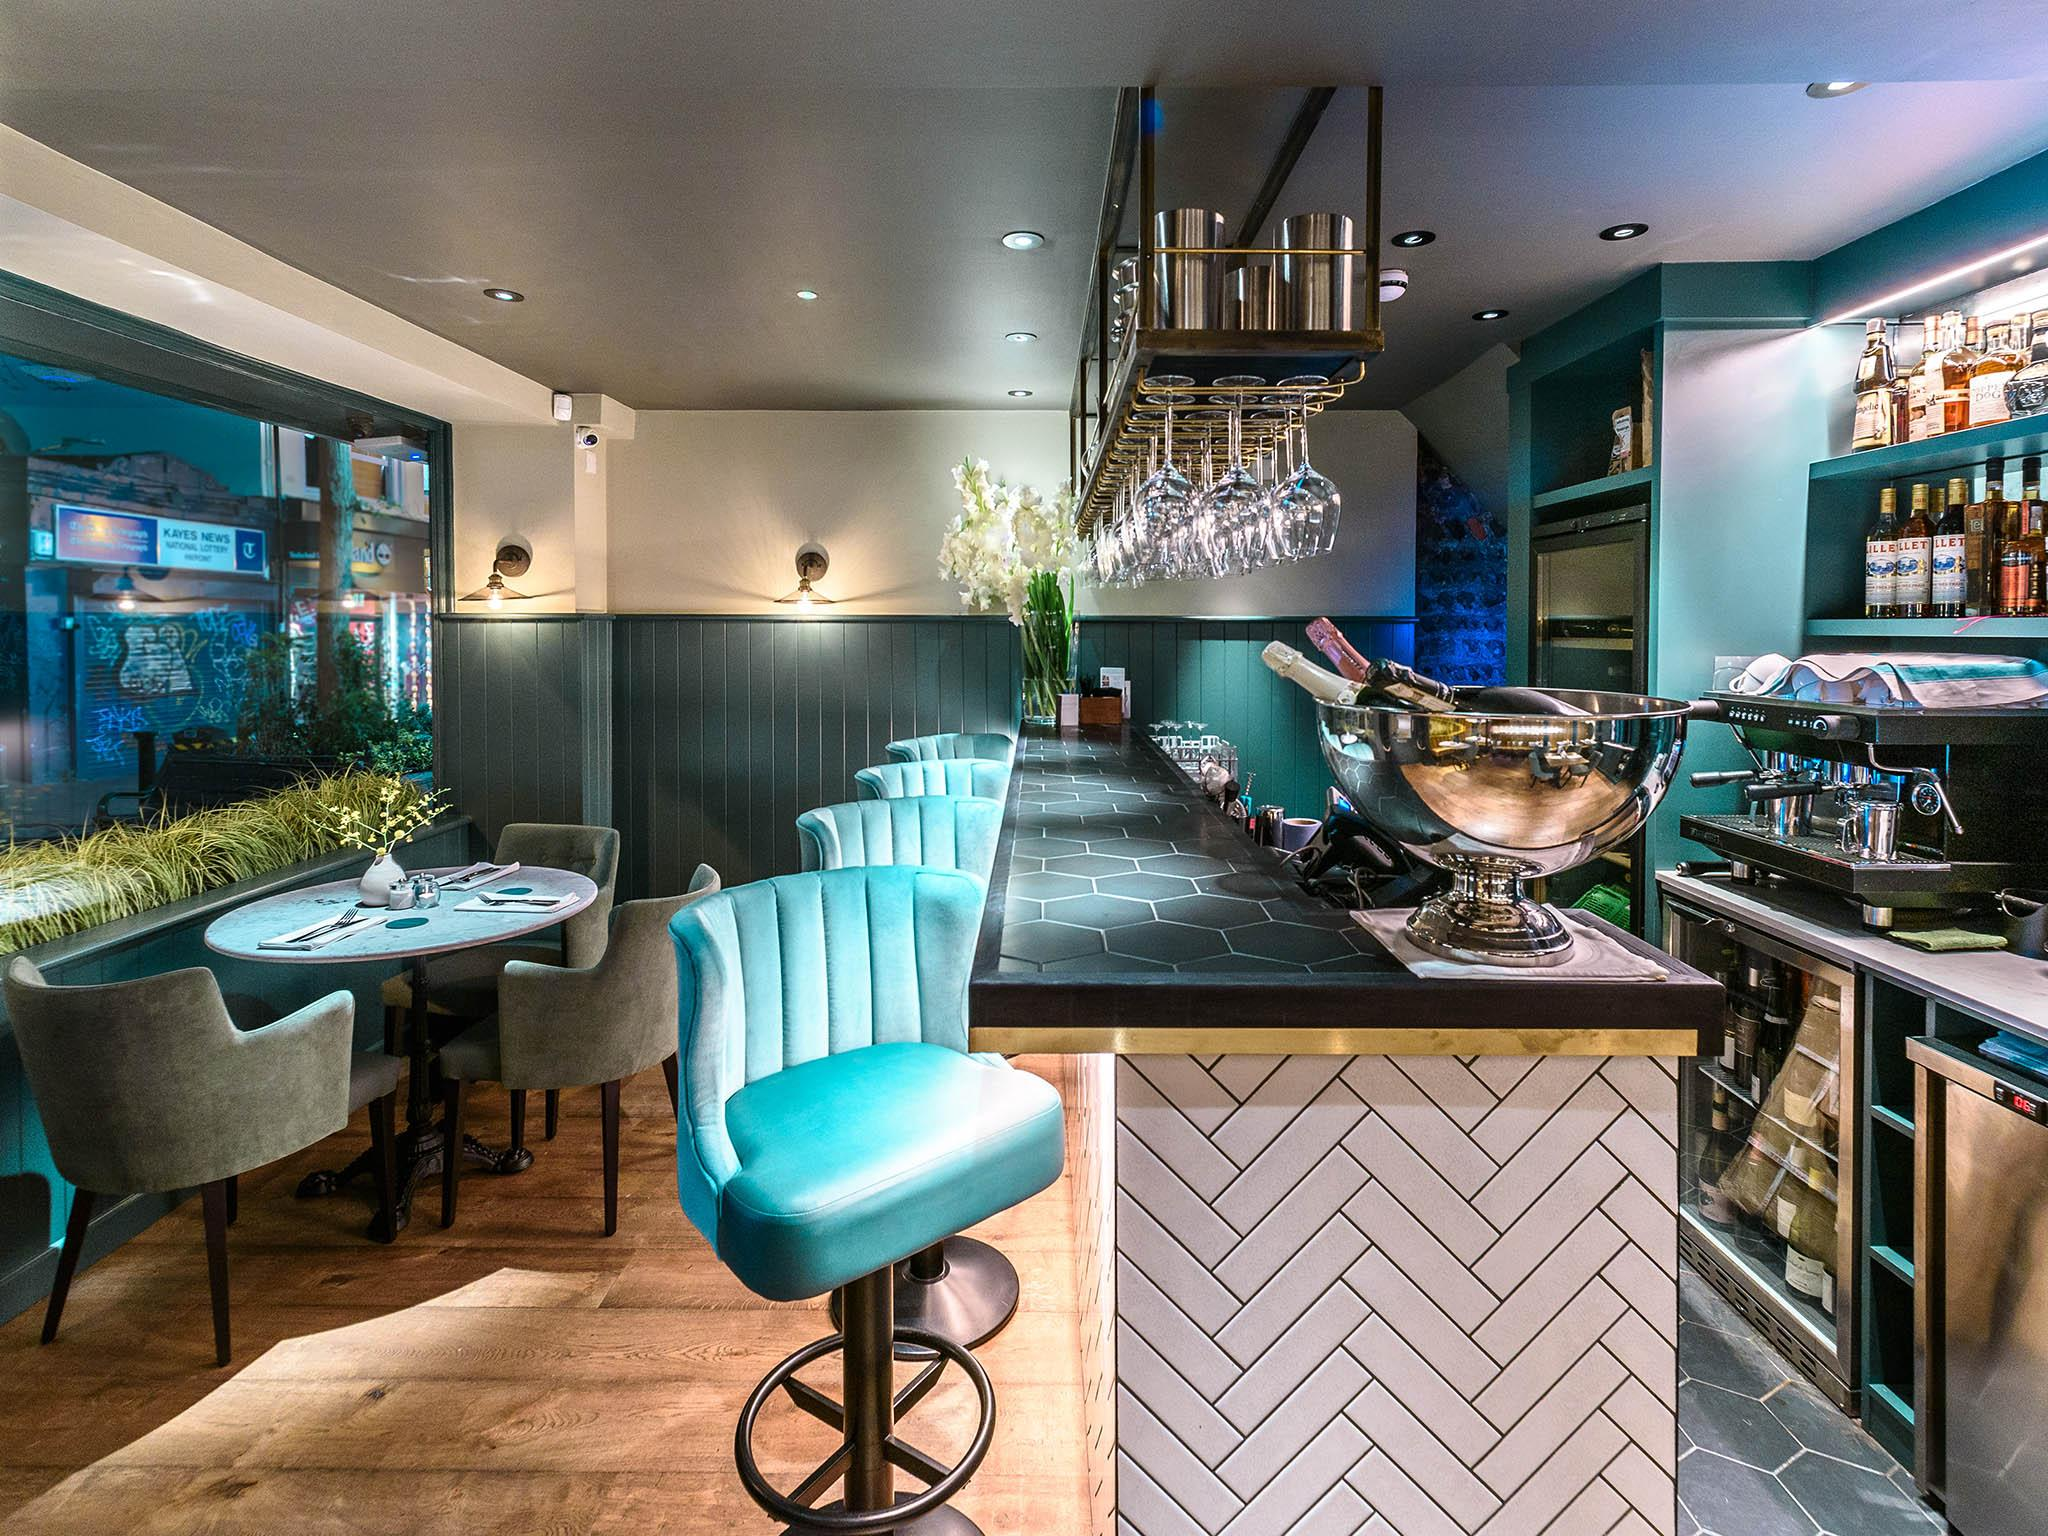 Frog by Adam Handling restaurant review: This joint has legs | The ...